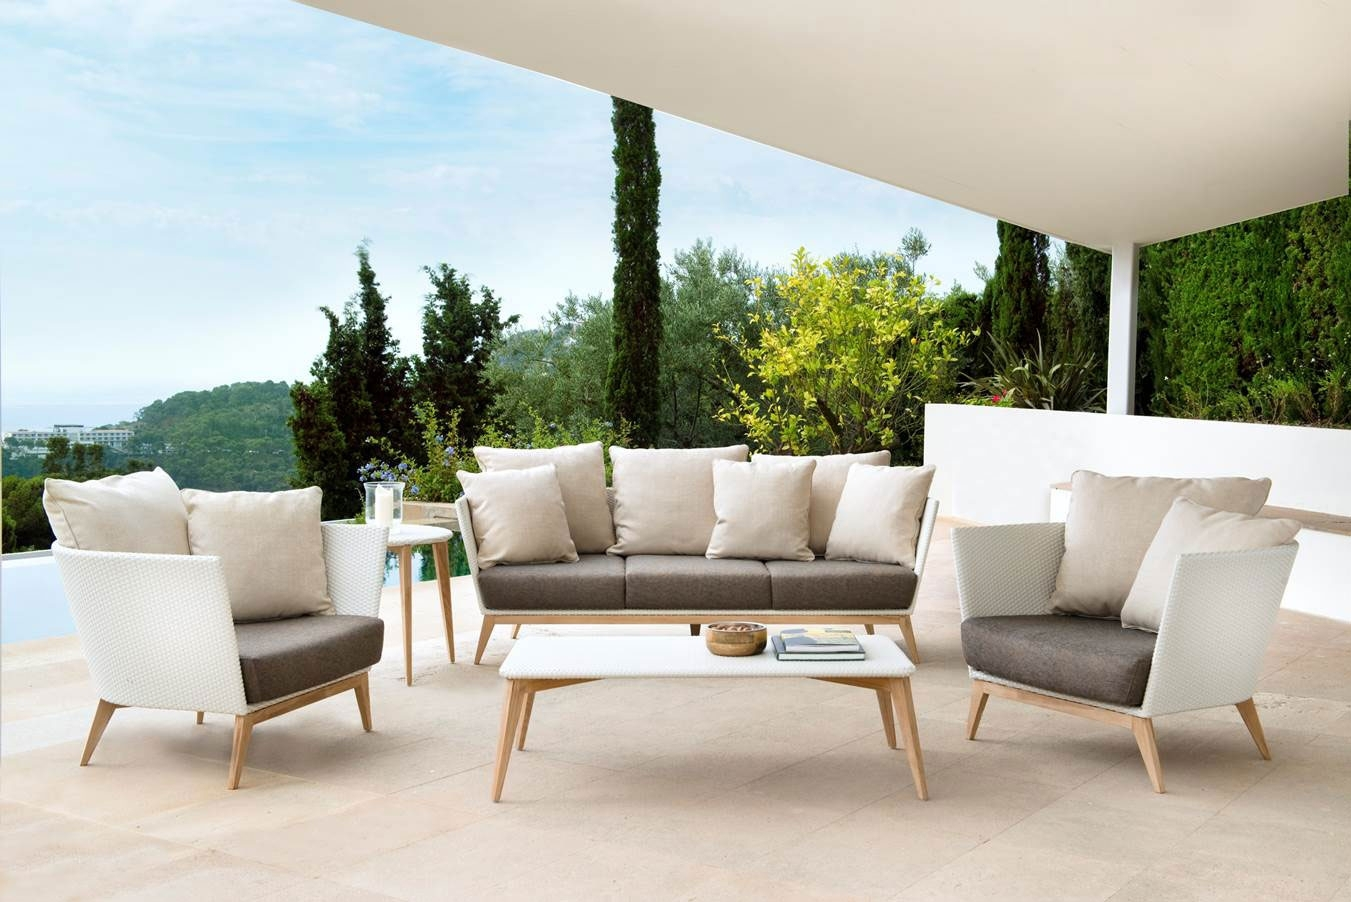 Image of: Modern Luxury Outdoor Patio Furniture With High End Outdoor Furniture